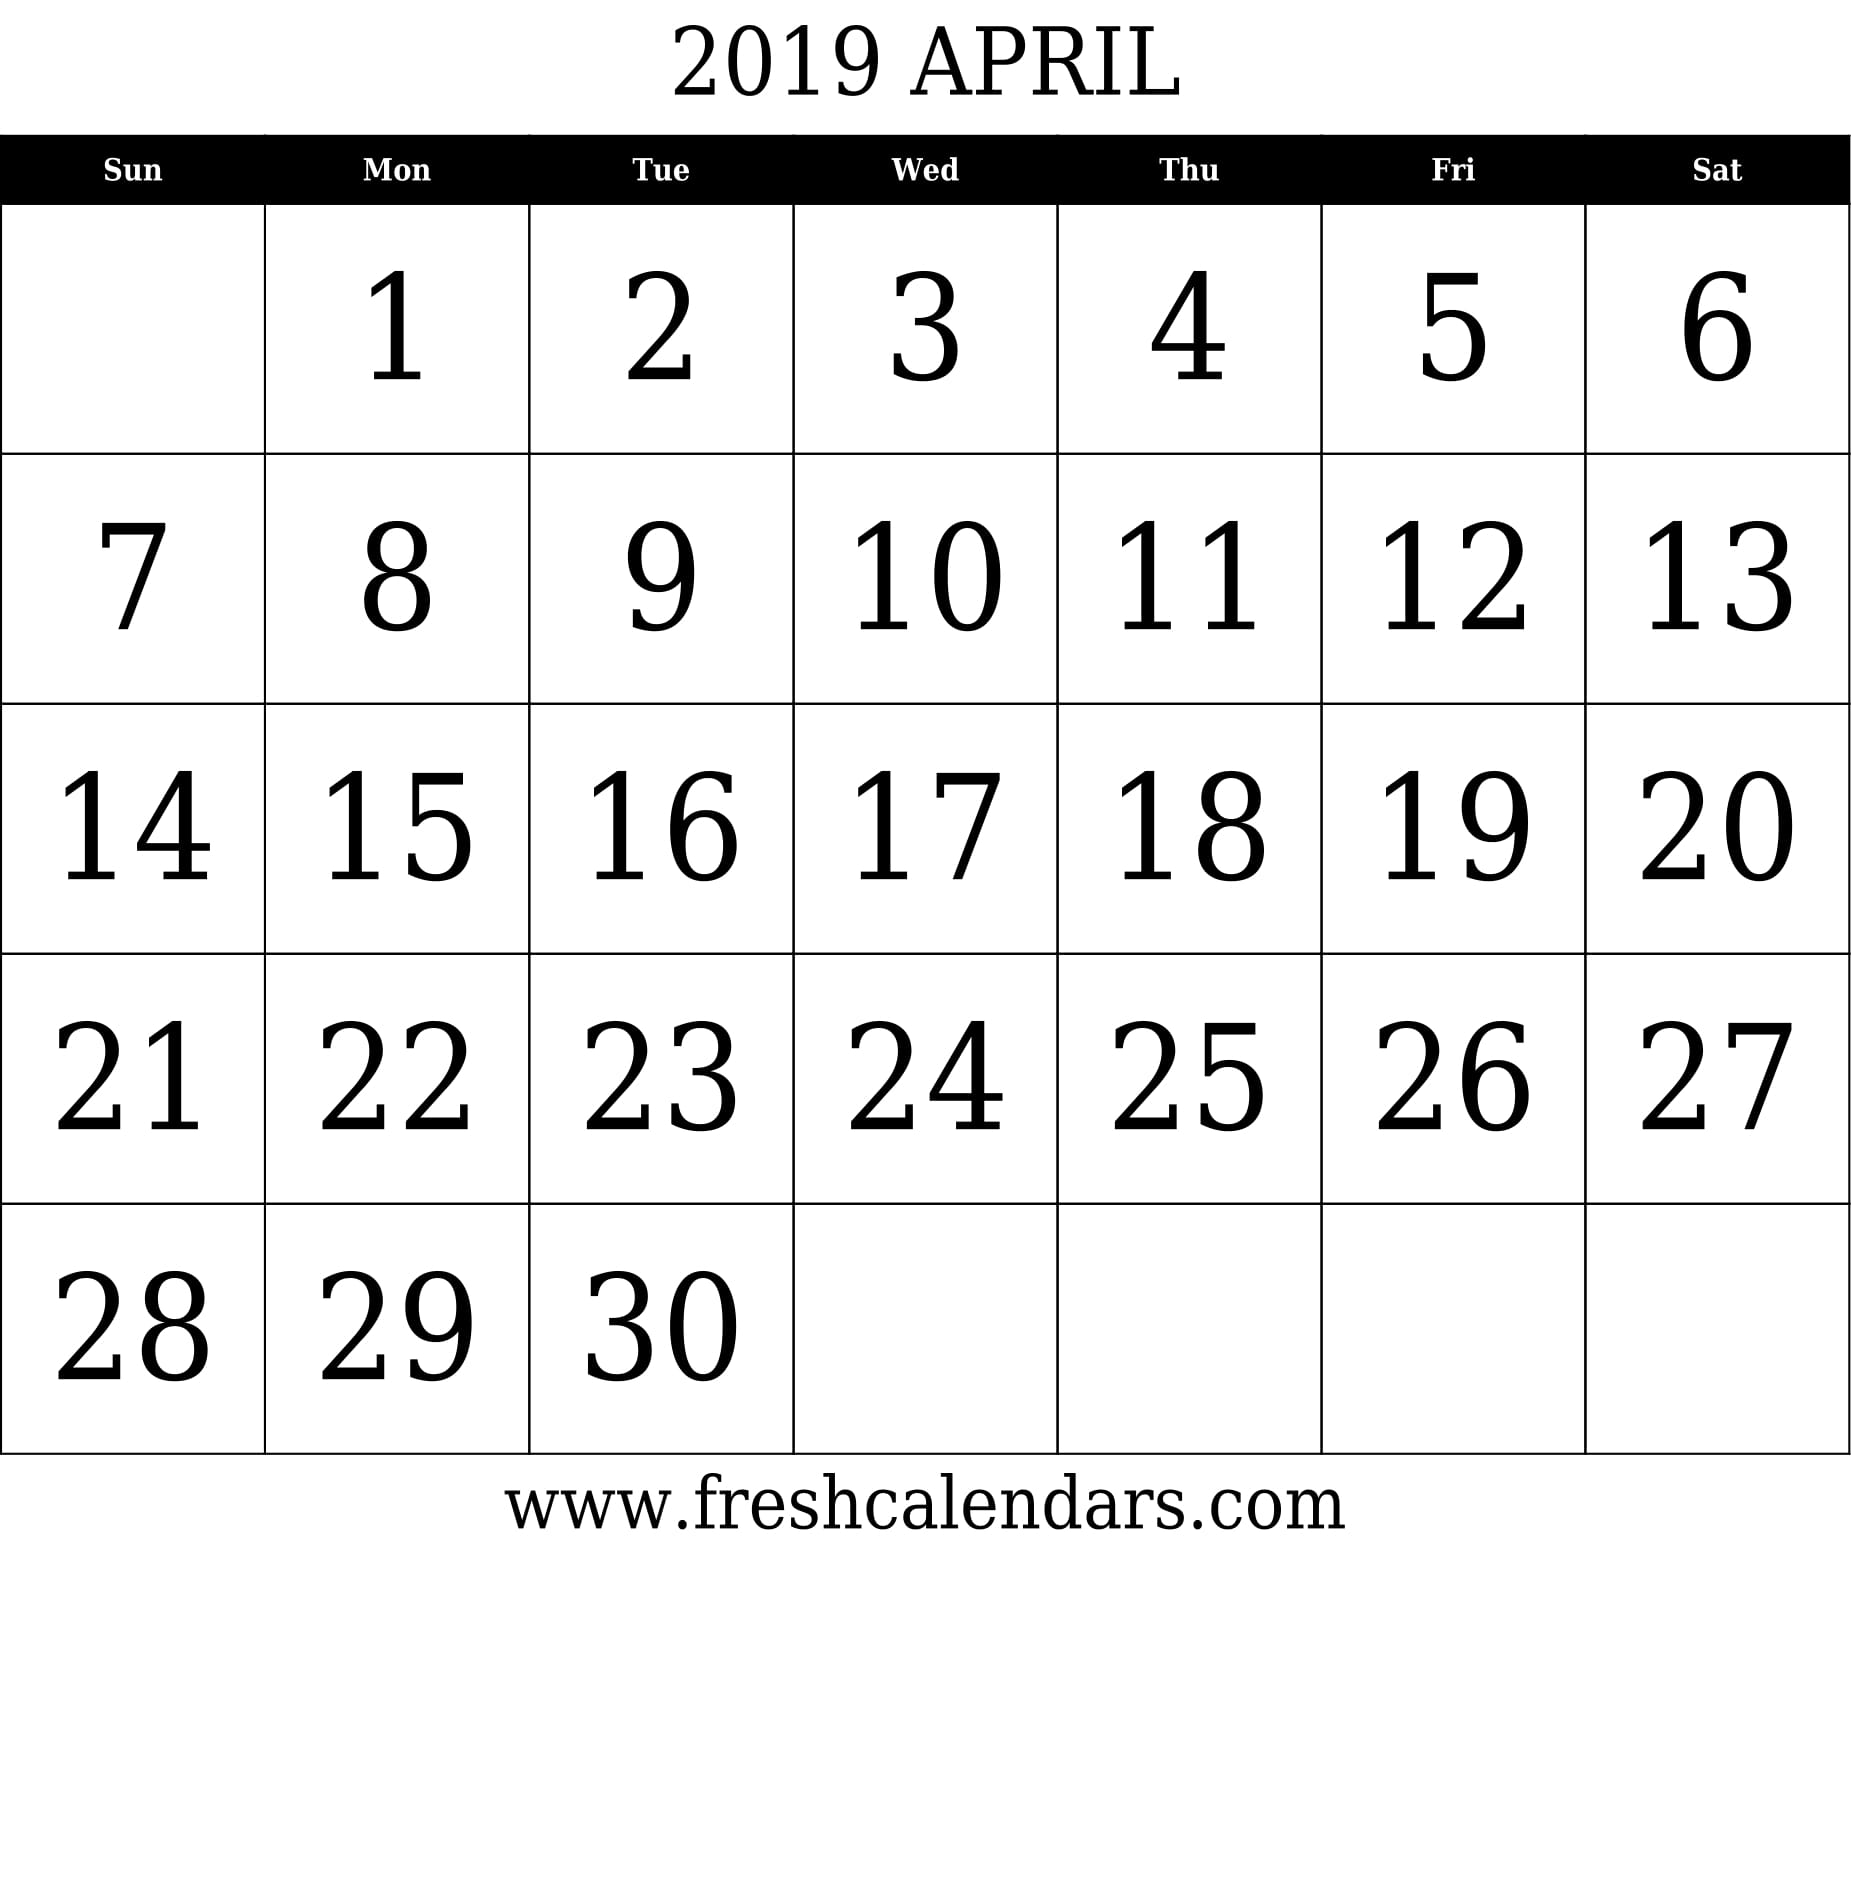 April 2019 Calendar With Large Dates